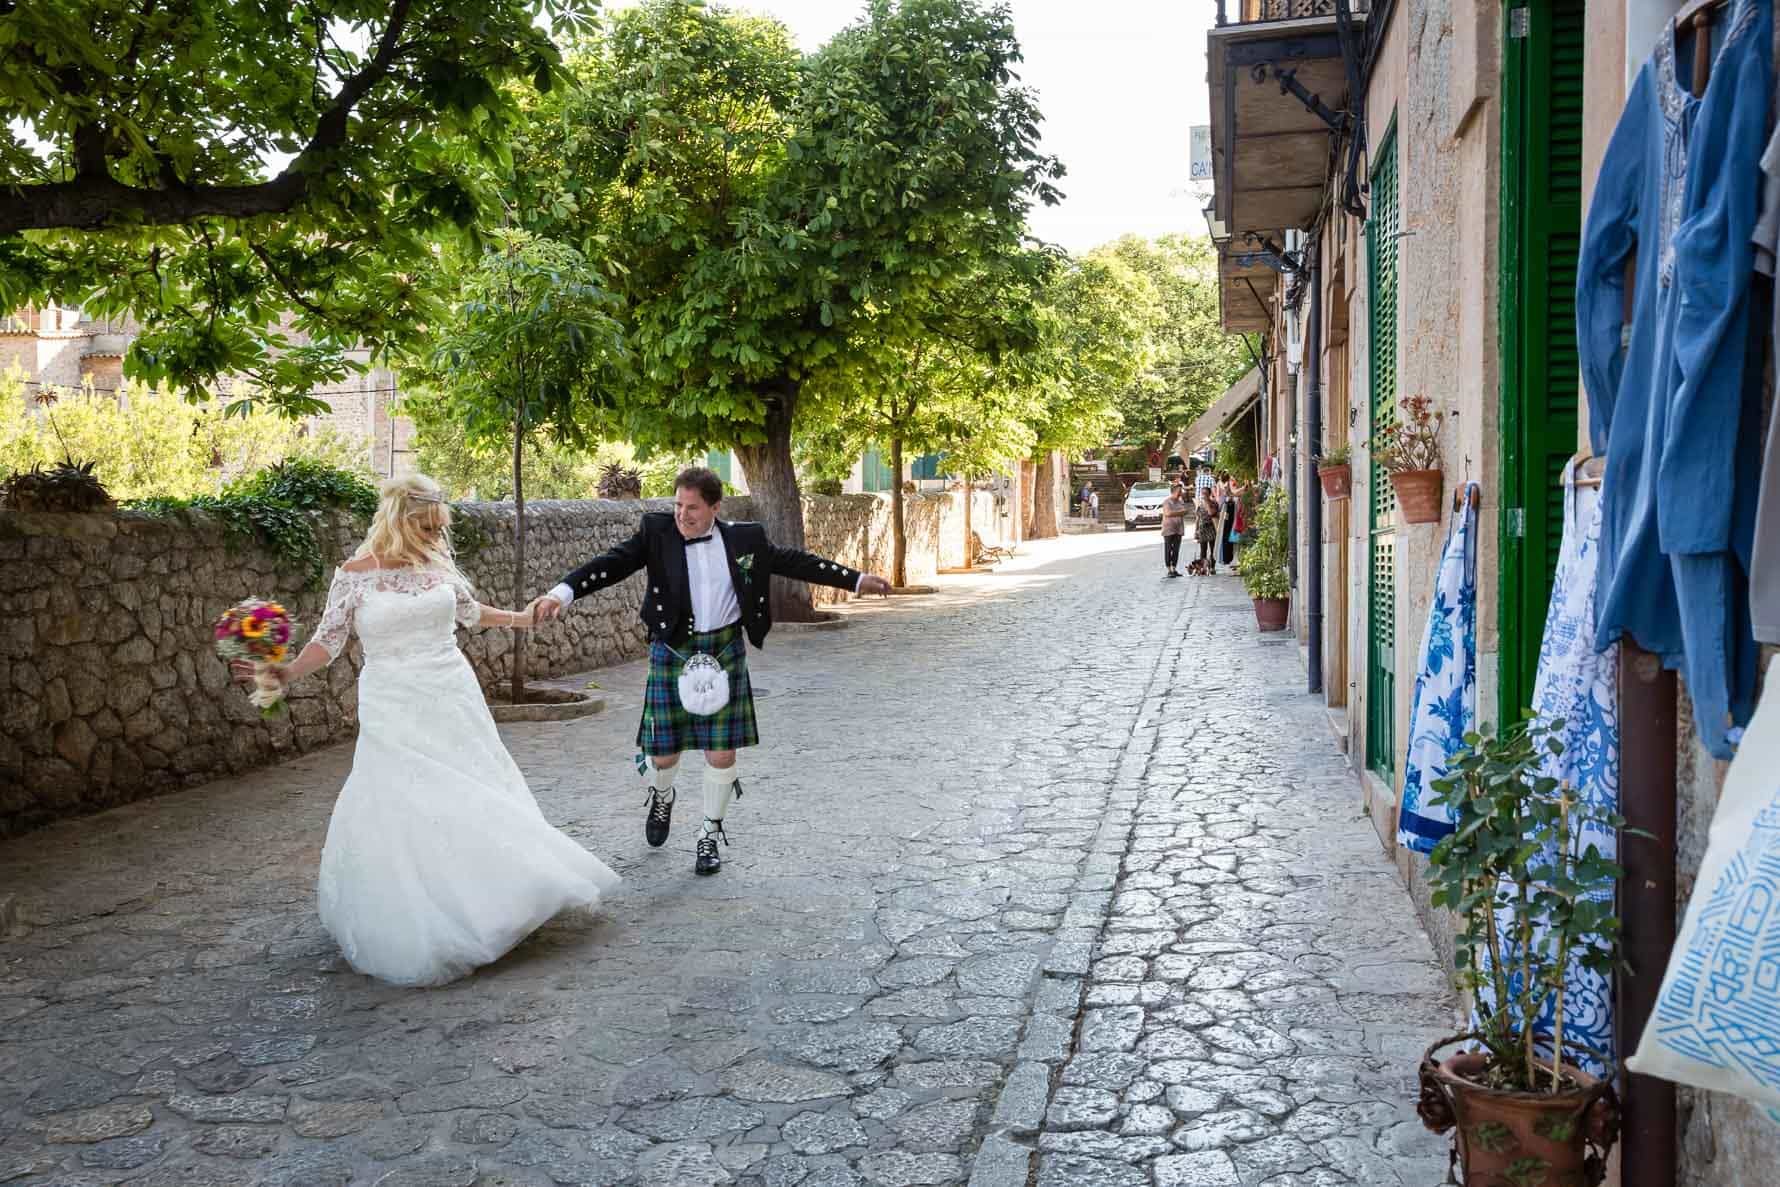 Happy bride and groom dancing in the streets of Valldemossa after their Mallorca wedding